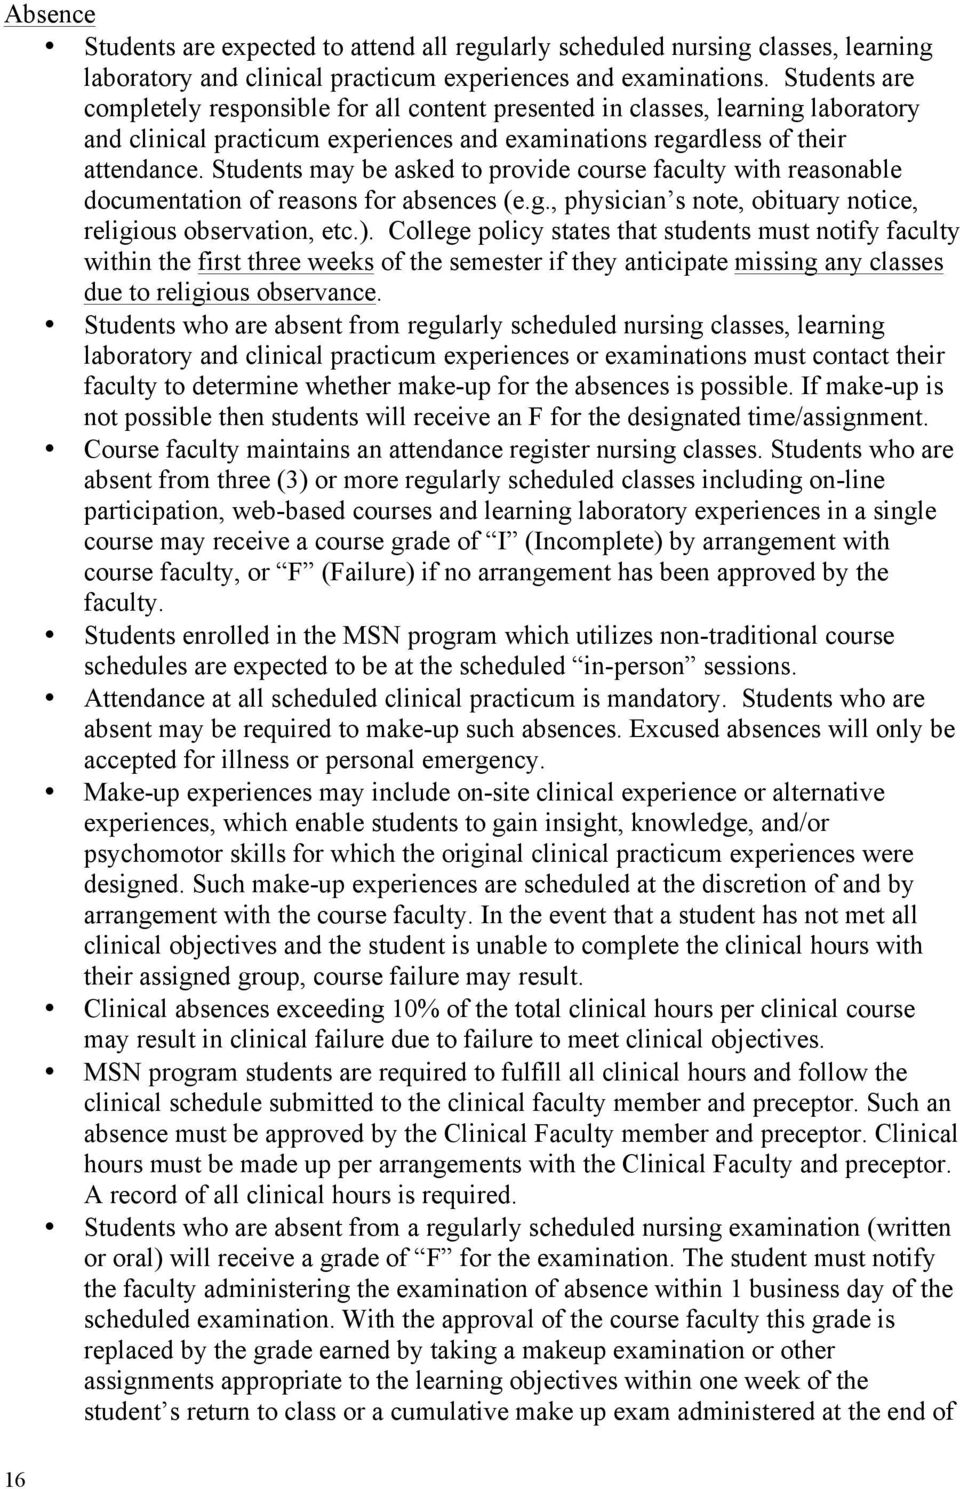 Students may be asked to provide course faculty with reasonable documentation of reasons for absences (e.g., physician s note, obituary notice, religious observation, etc.).